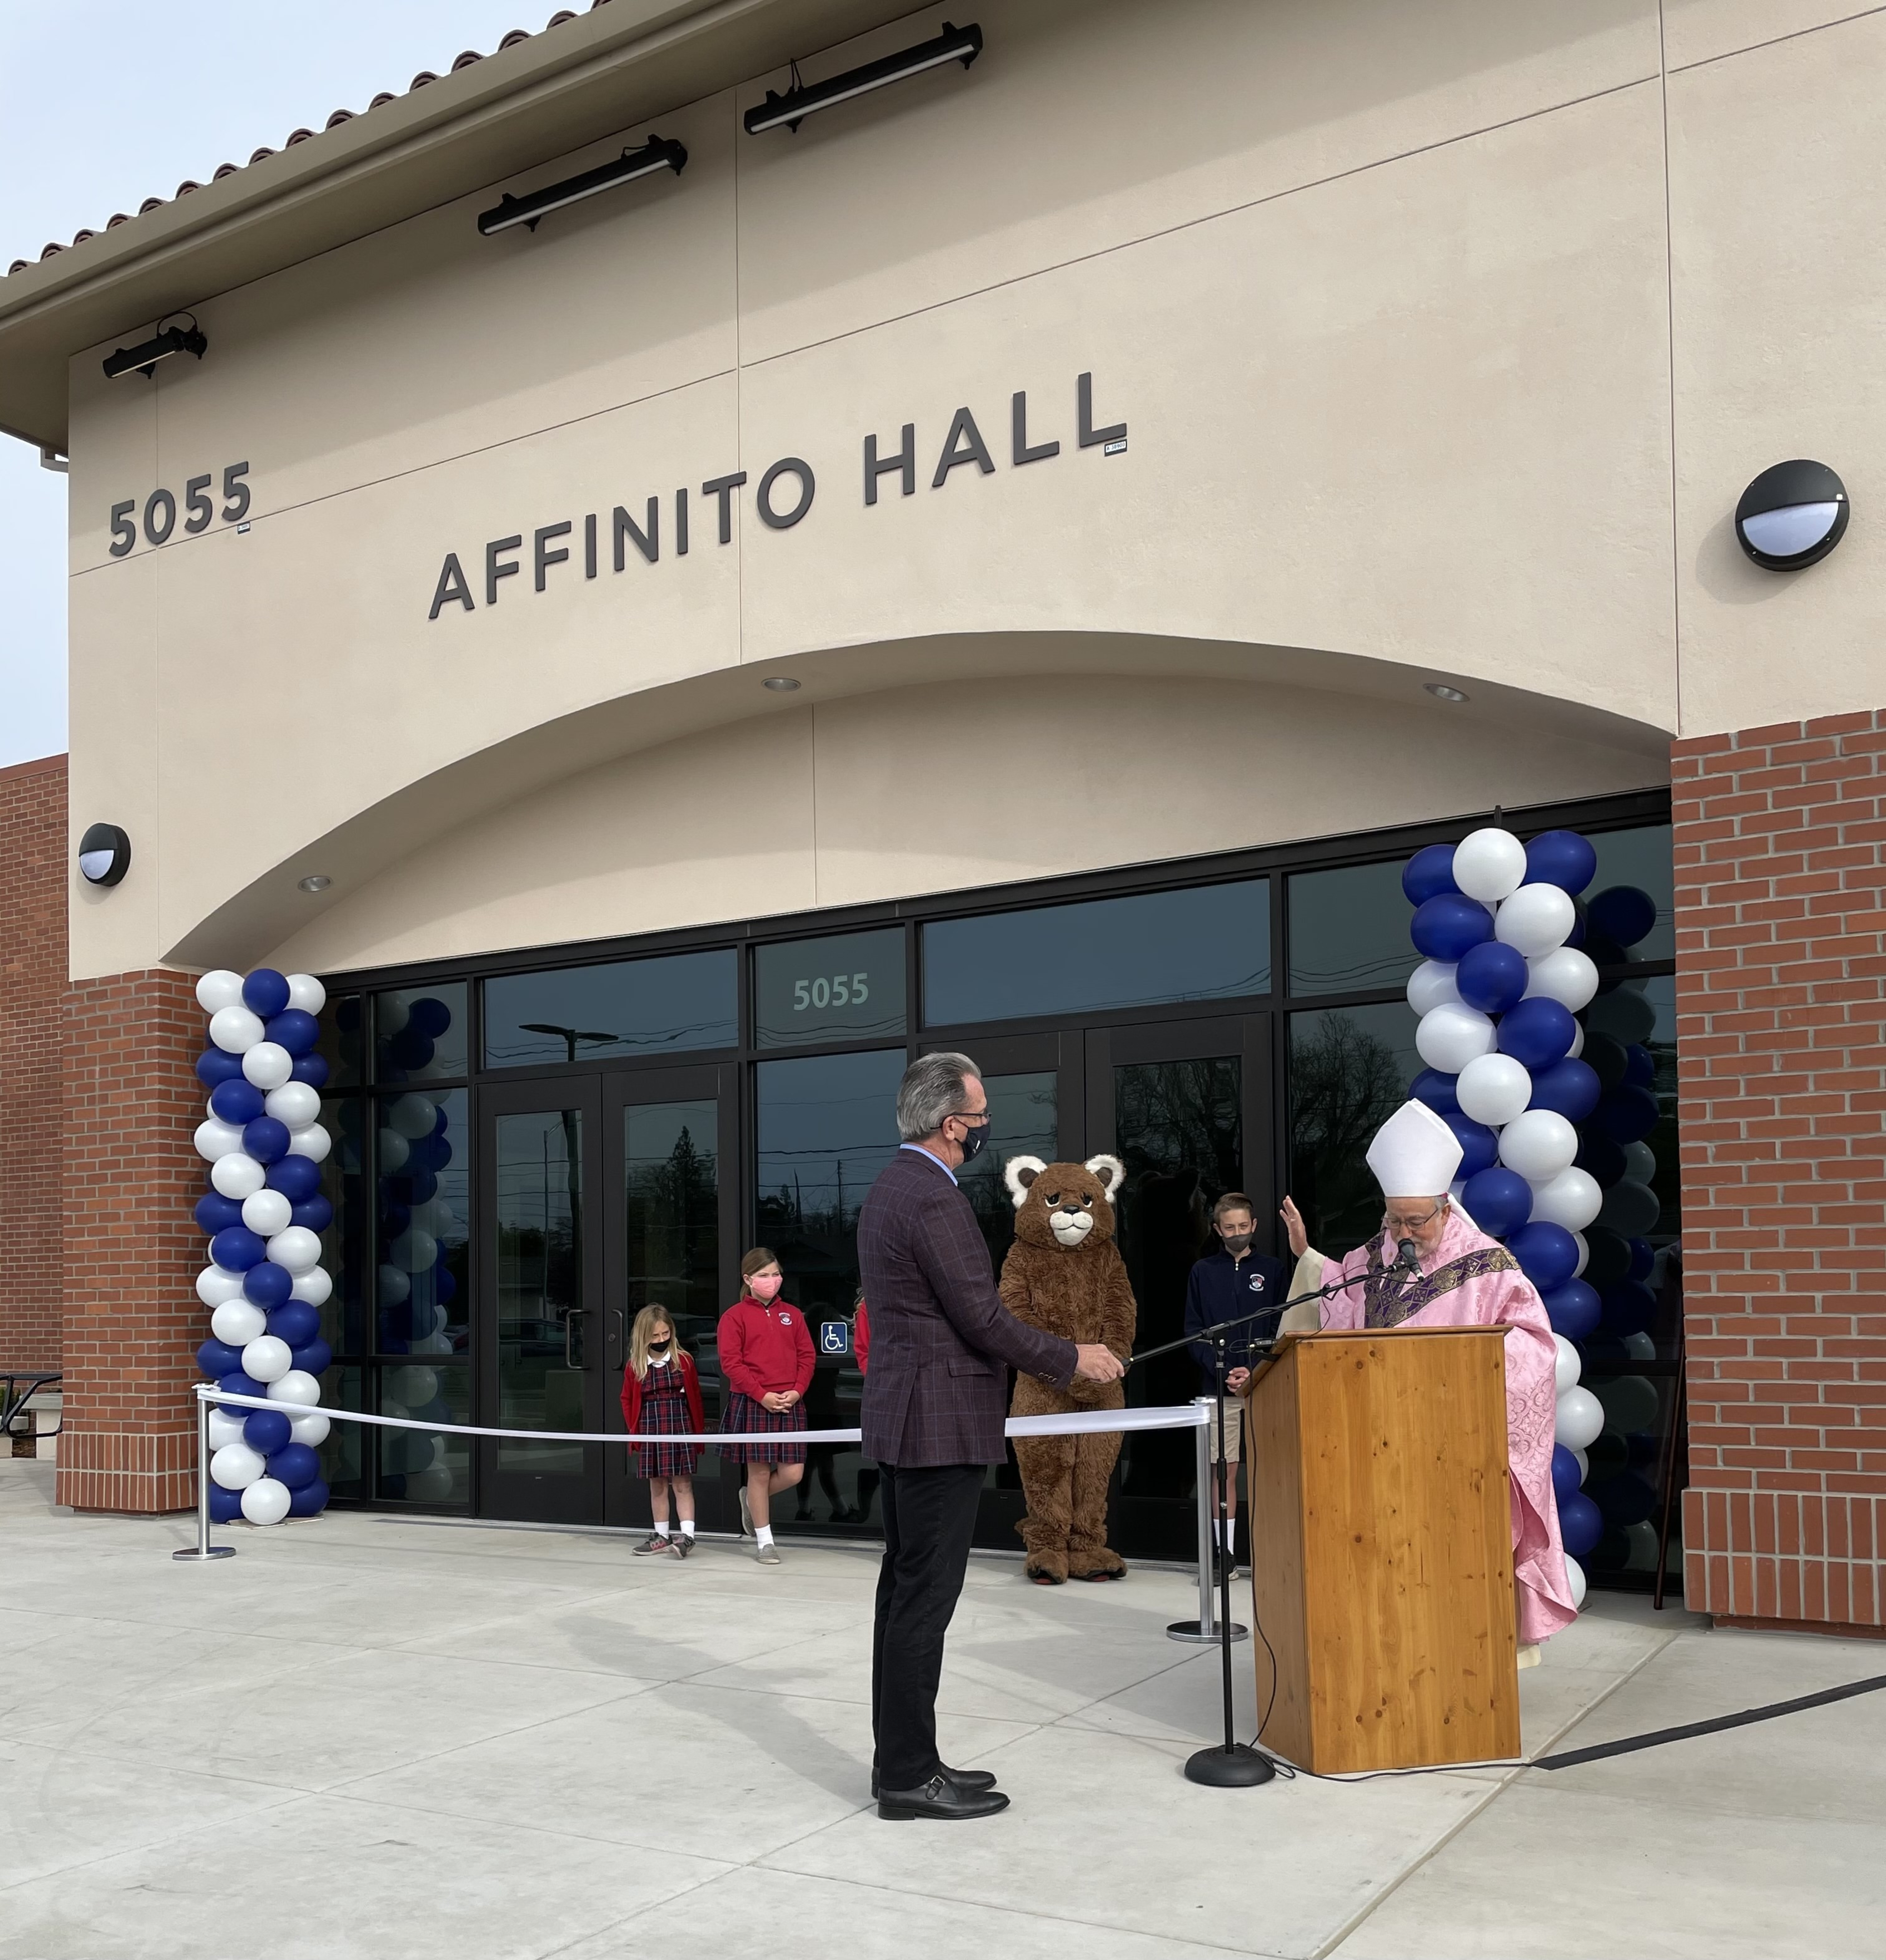 Bishop Soto blesses Affinito Hall.